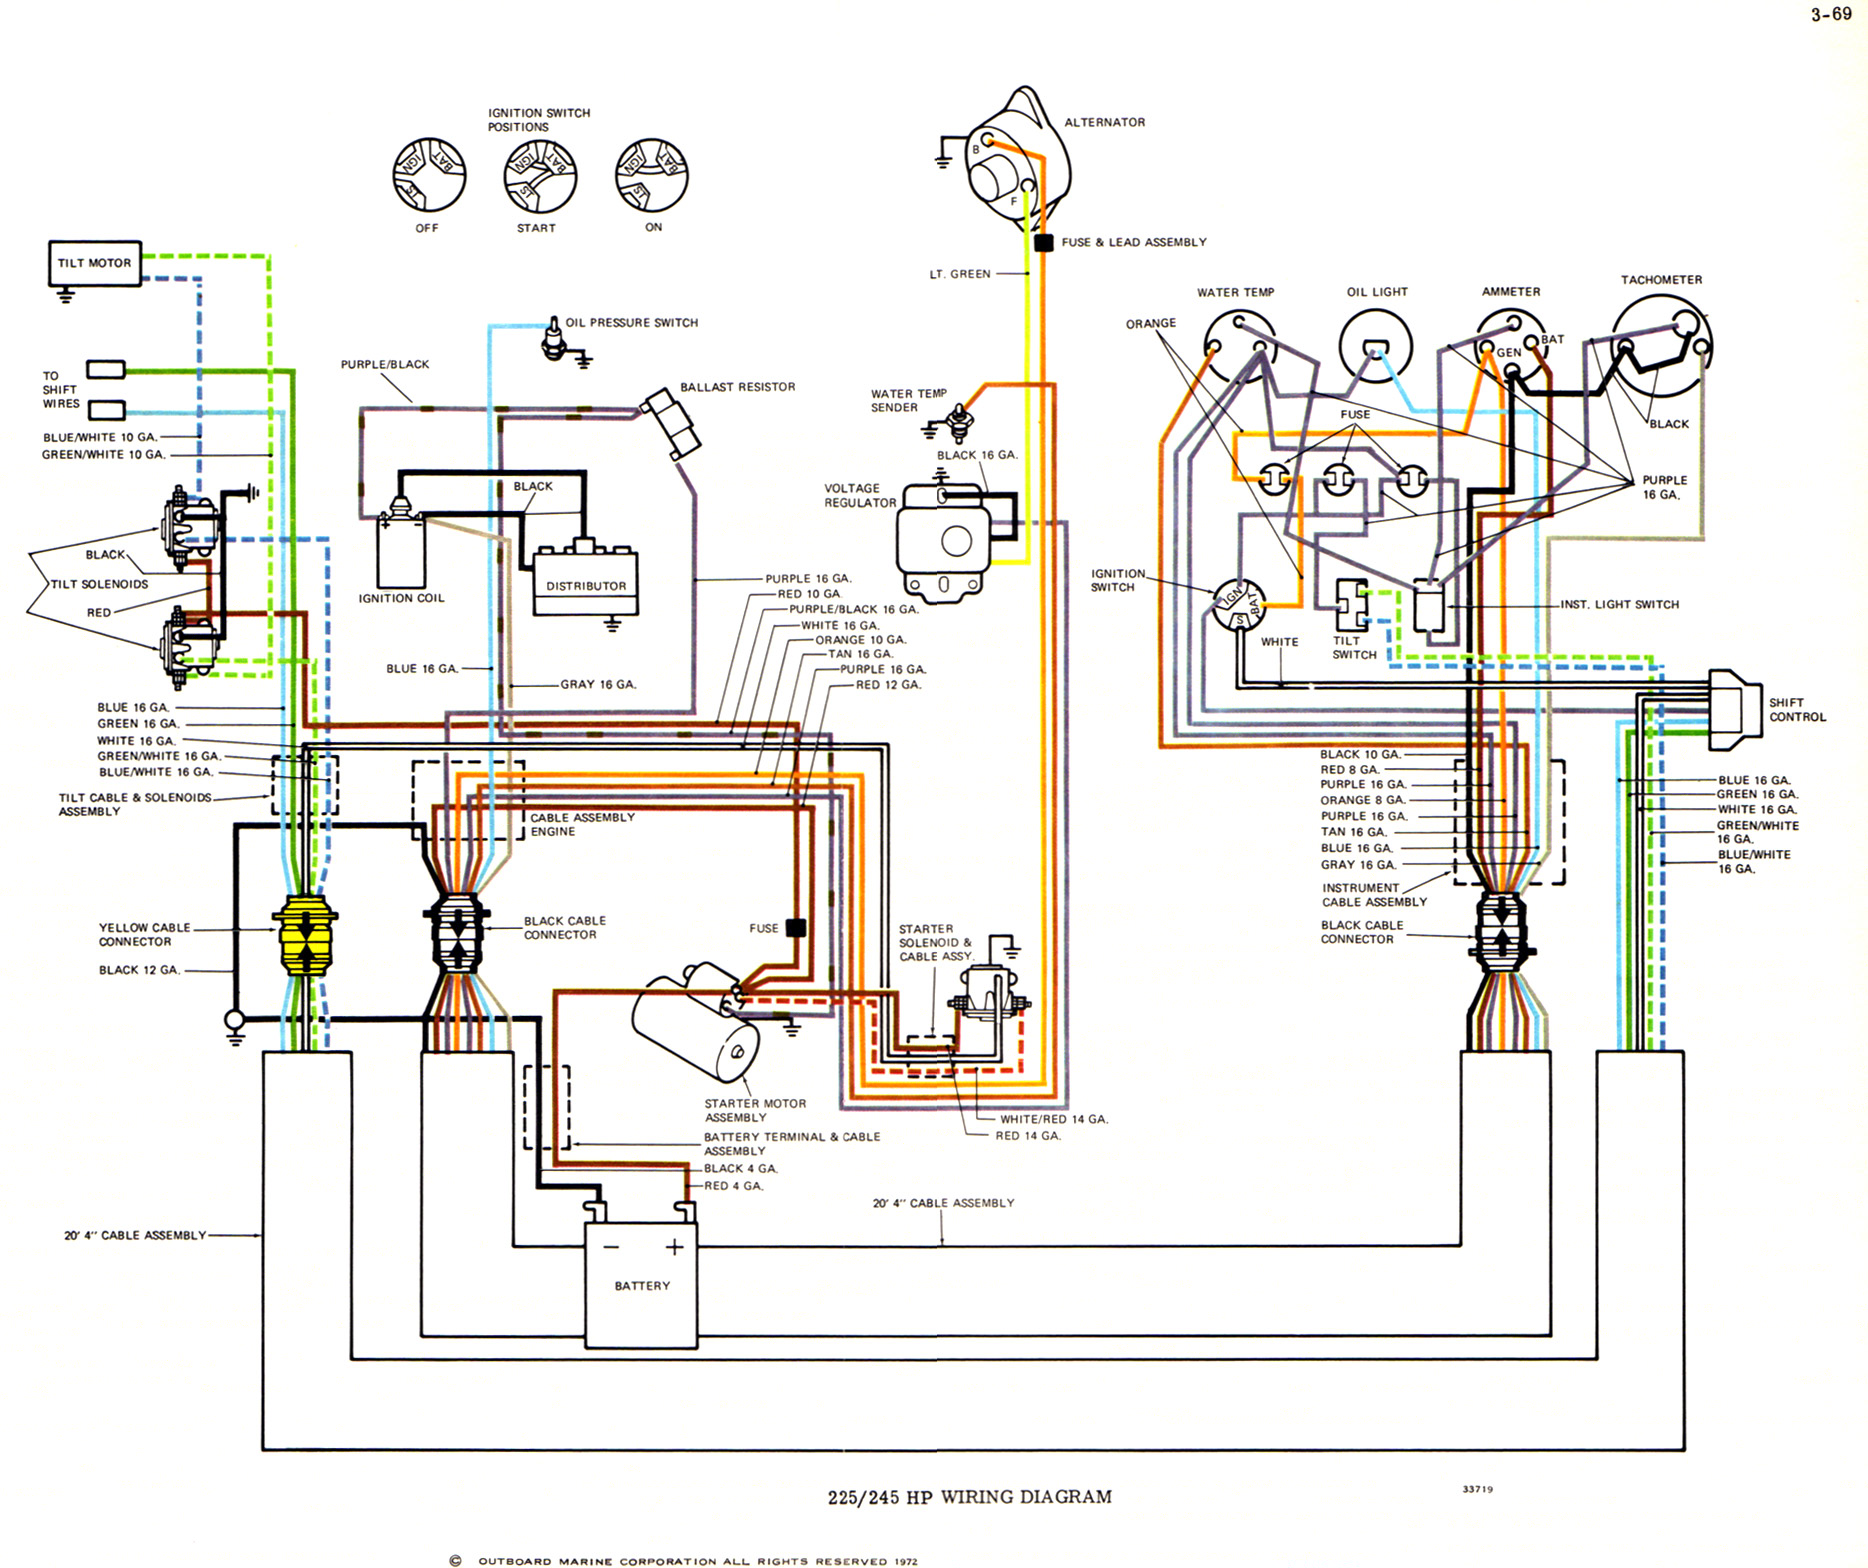 hight resolution of boat motor wiring wiring diagram online 4 battery 24 volt wiring diagram boat motor diagrams schematic